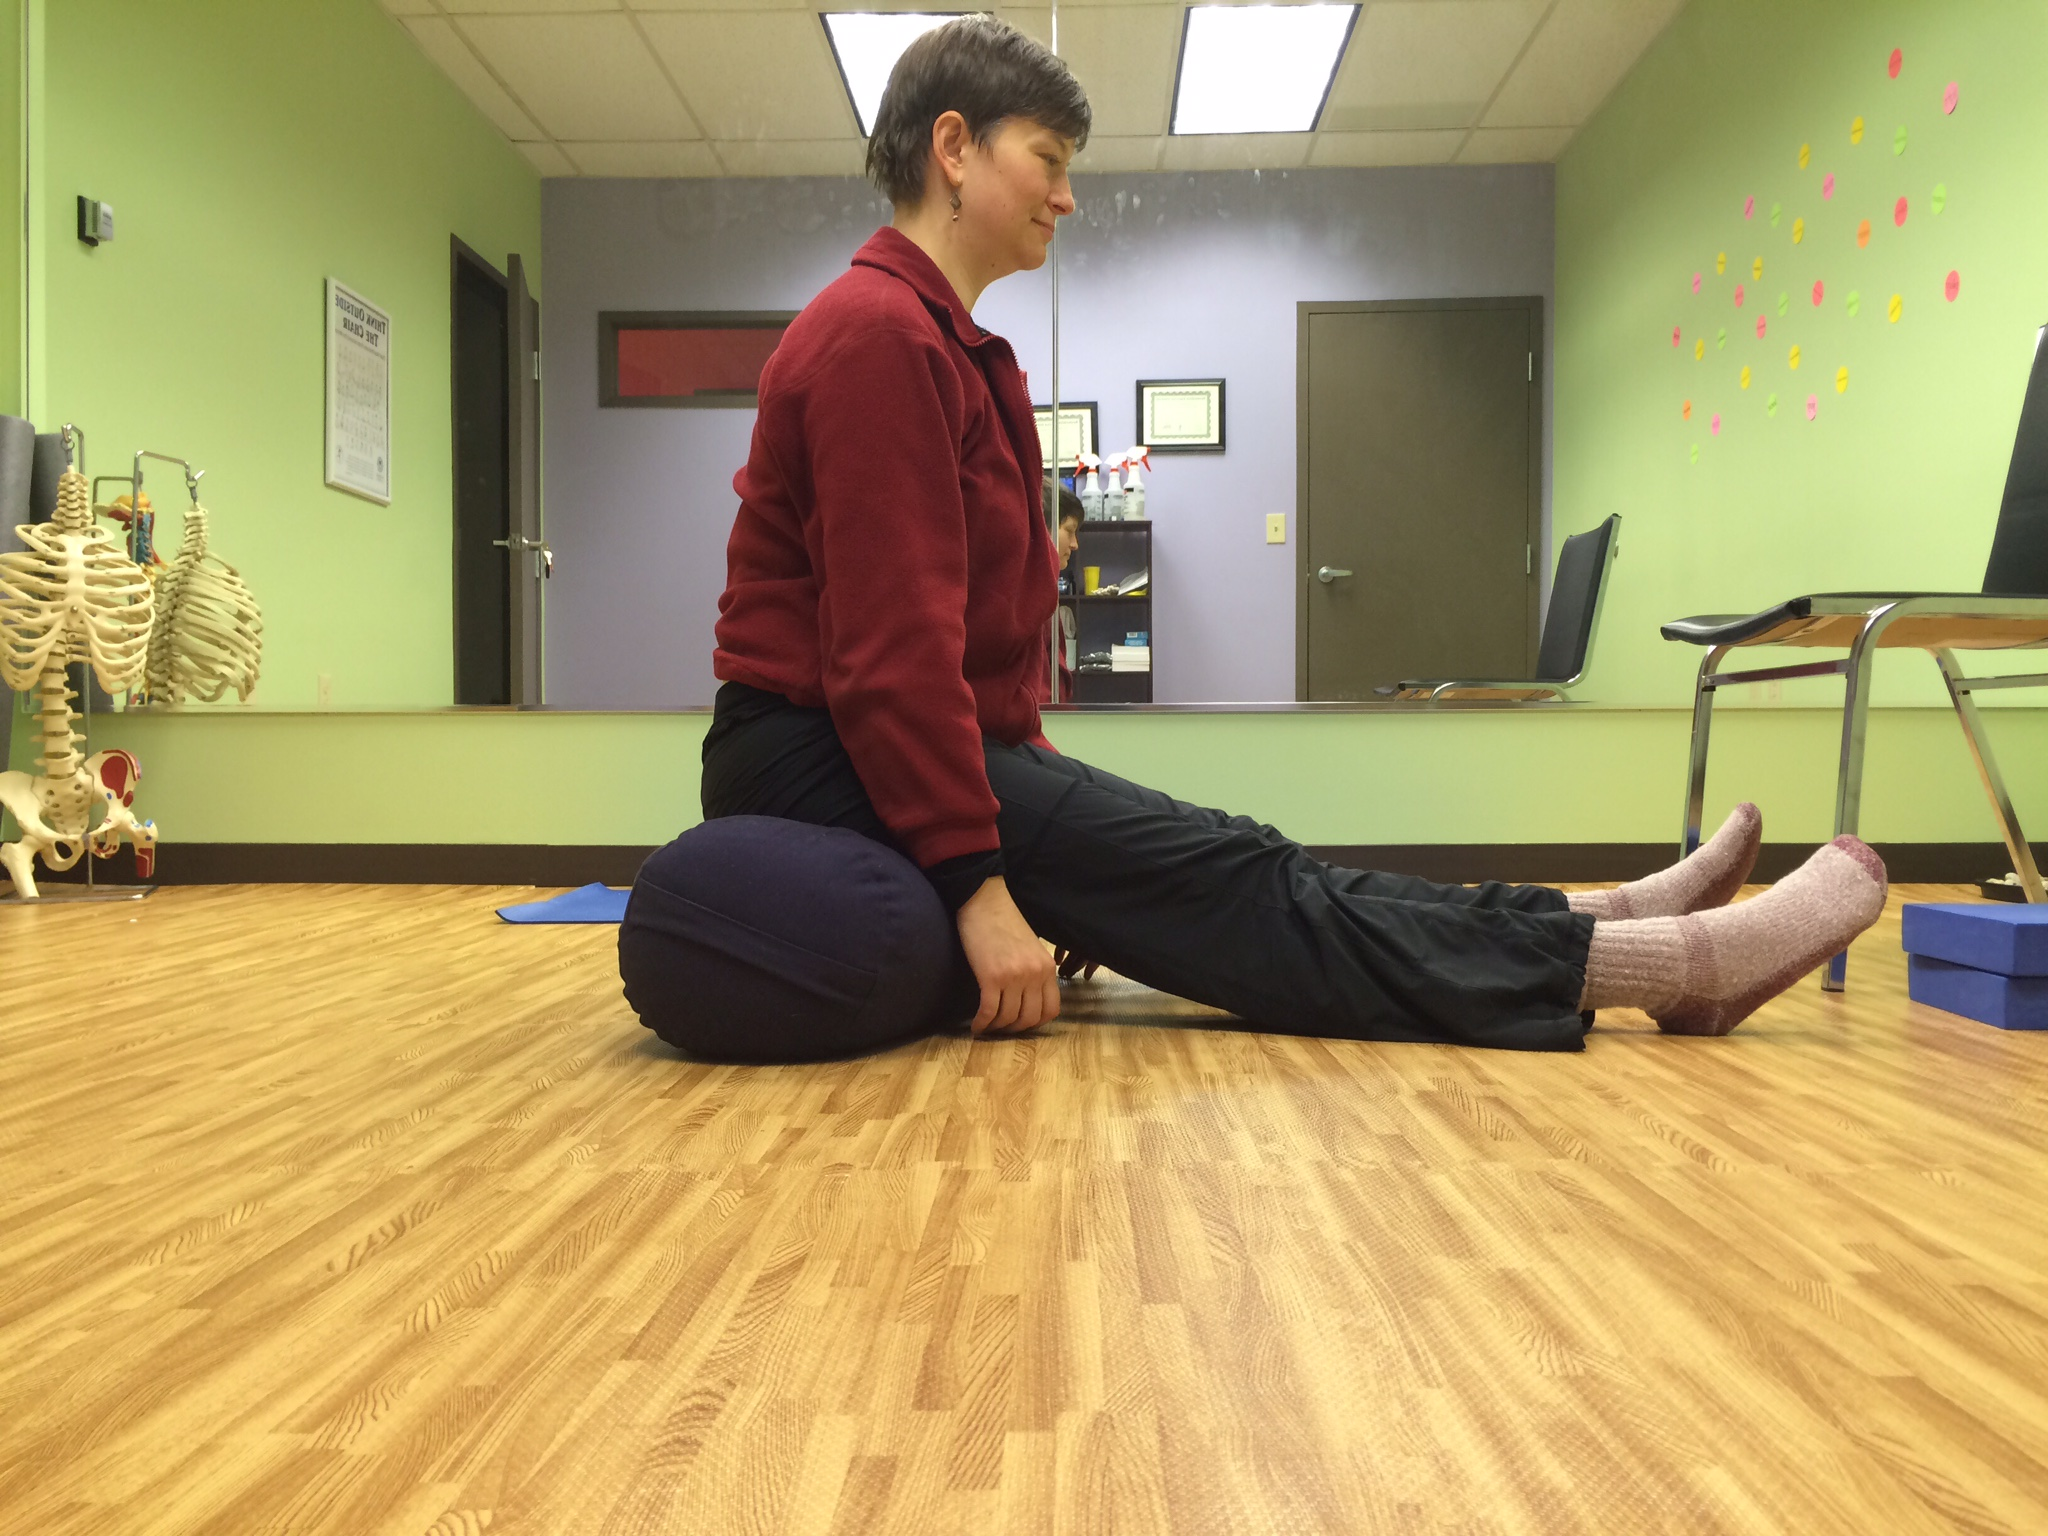 Stretch your hamstrings while you sit!